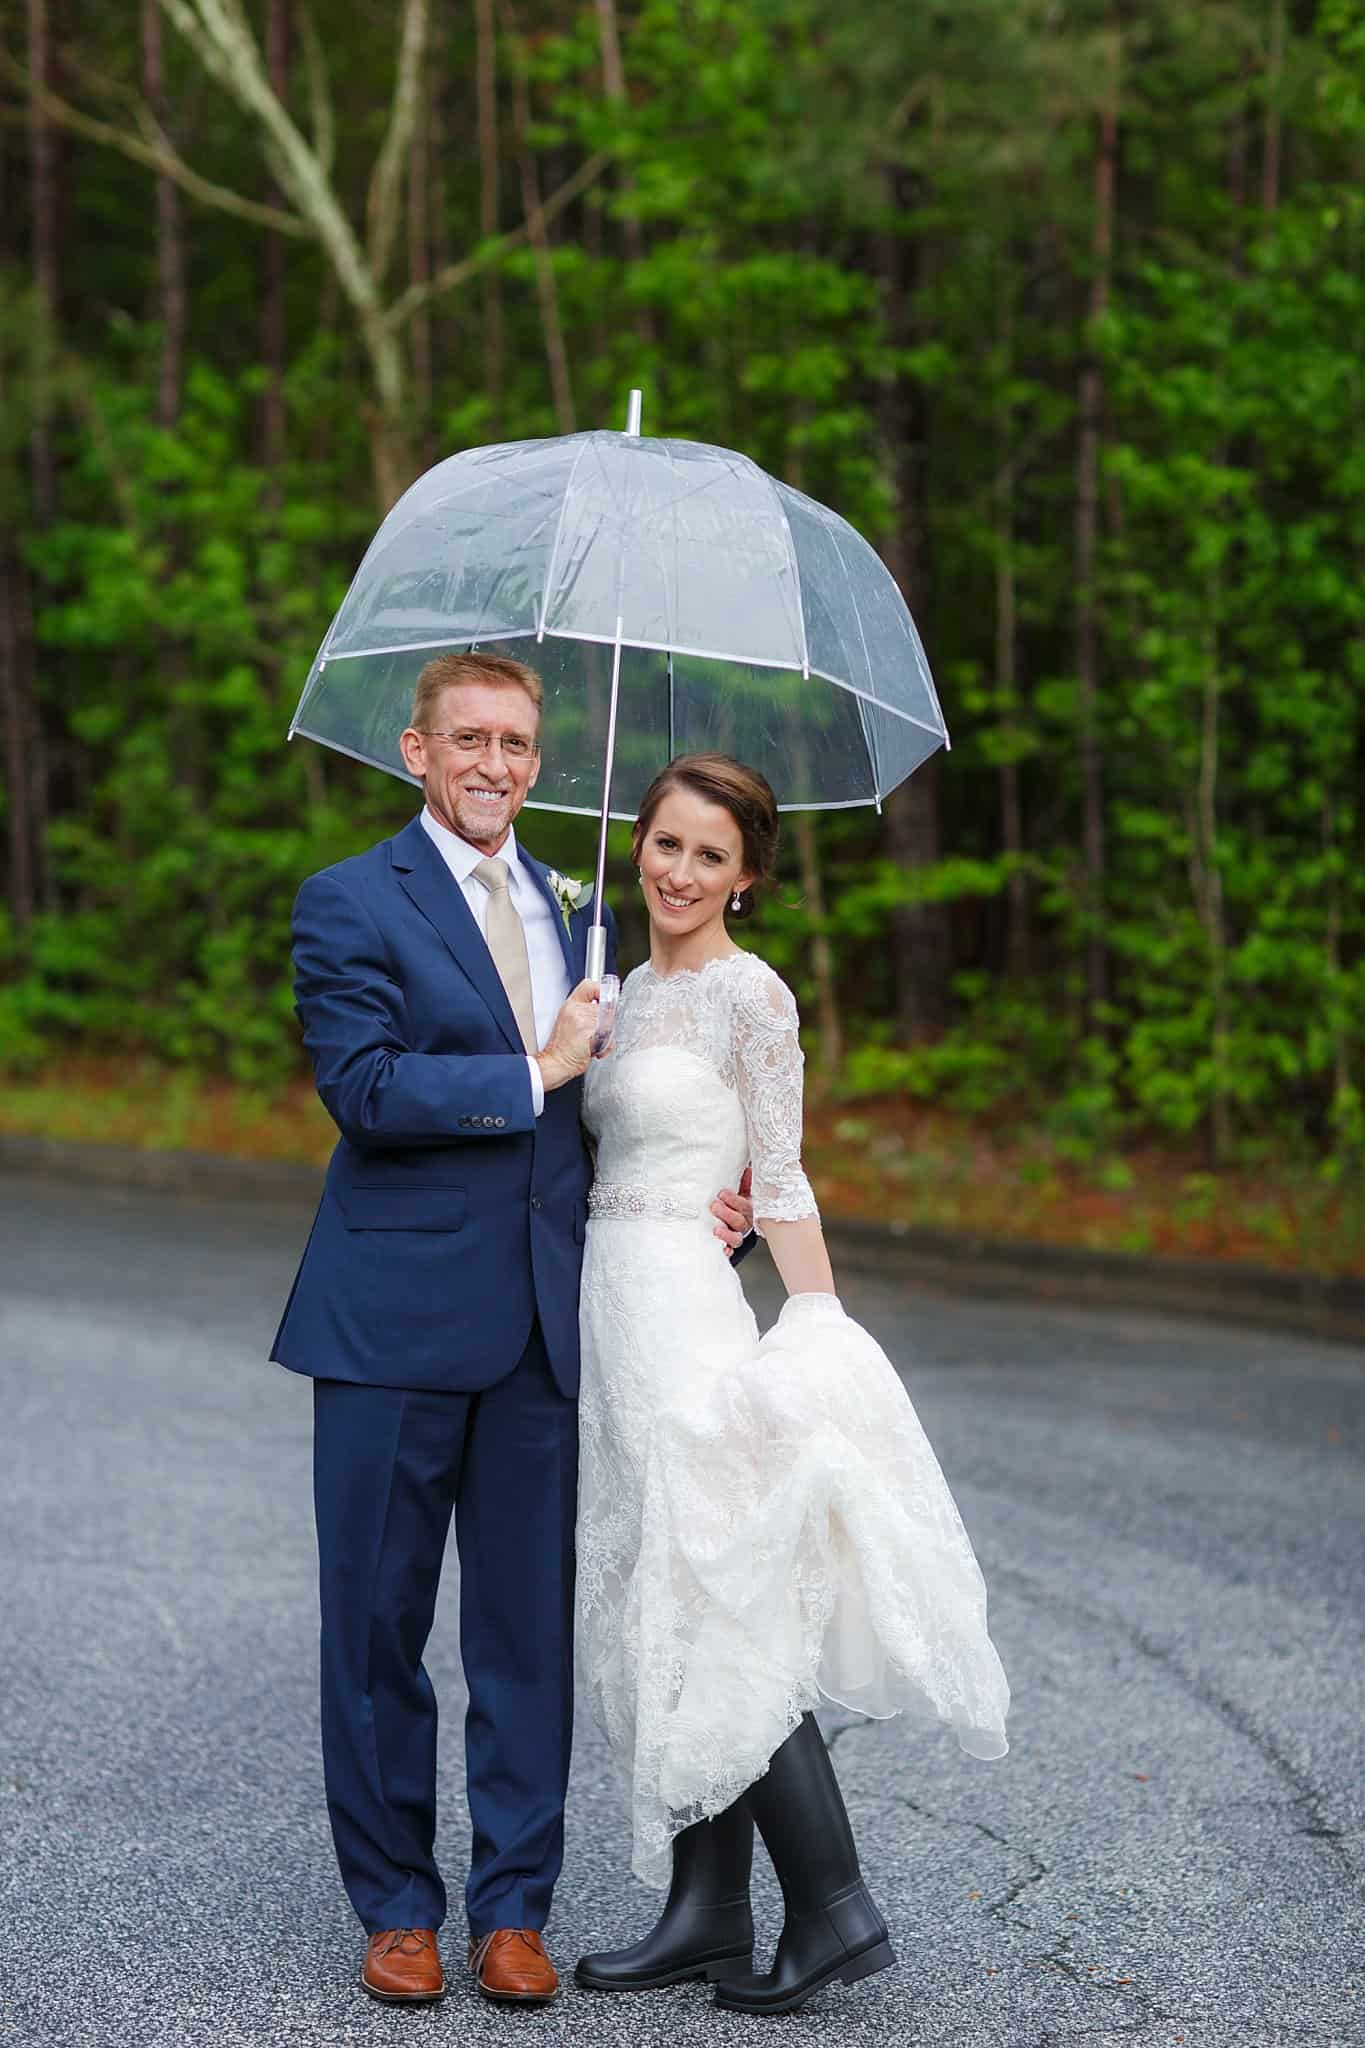 Bride and Groom pose with umbrella